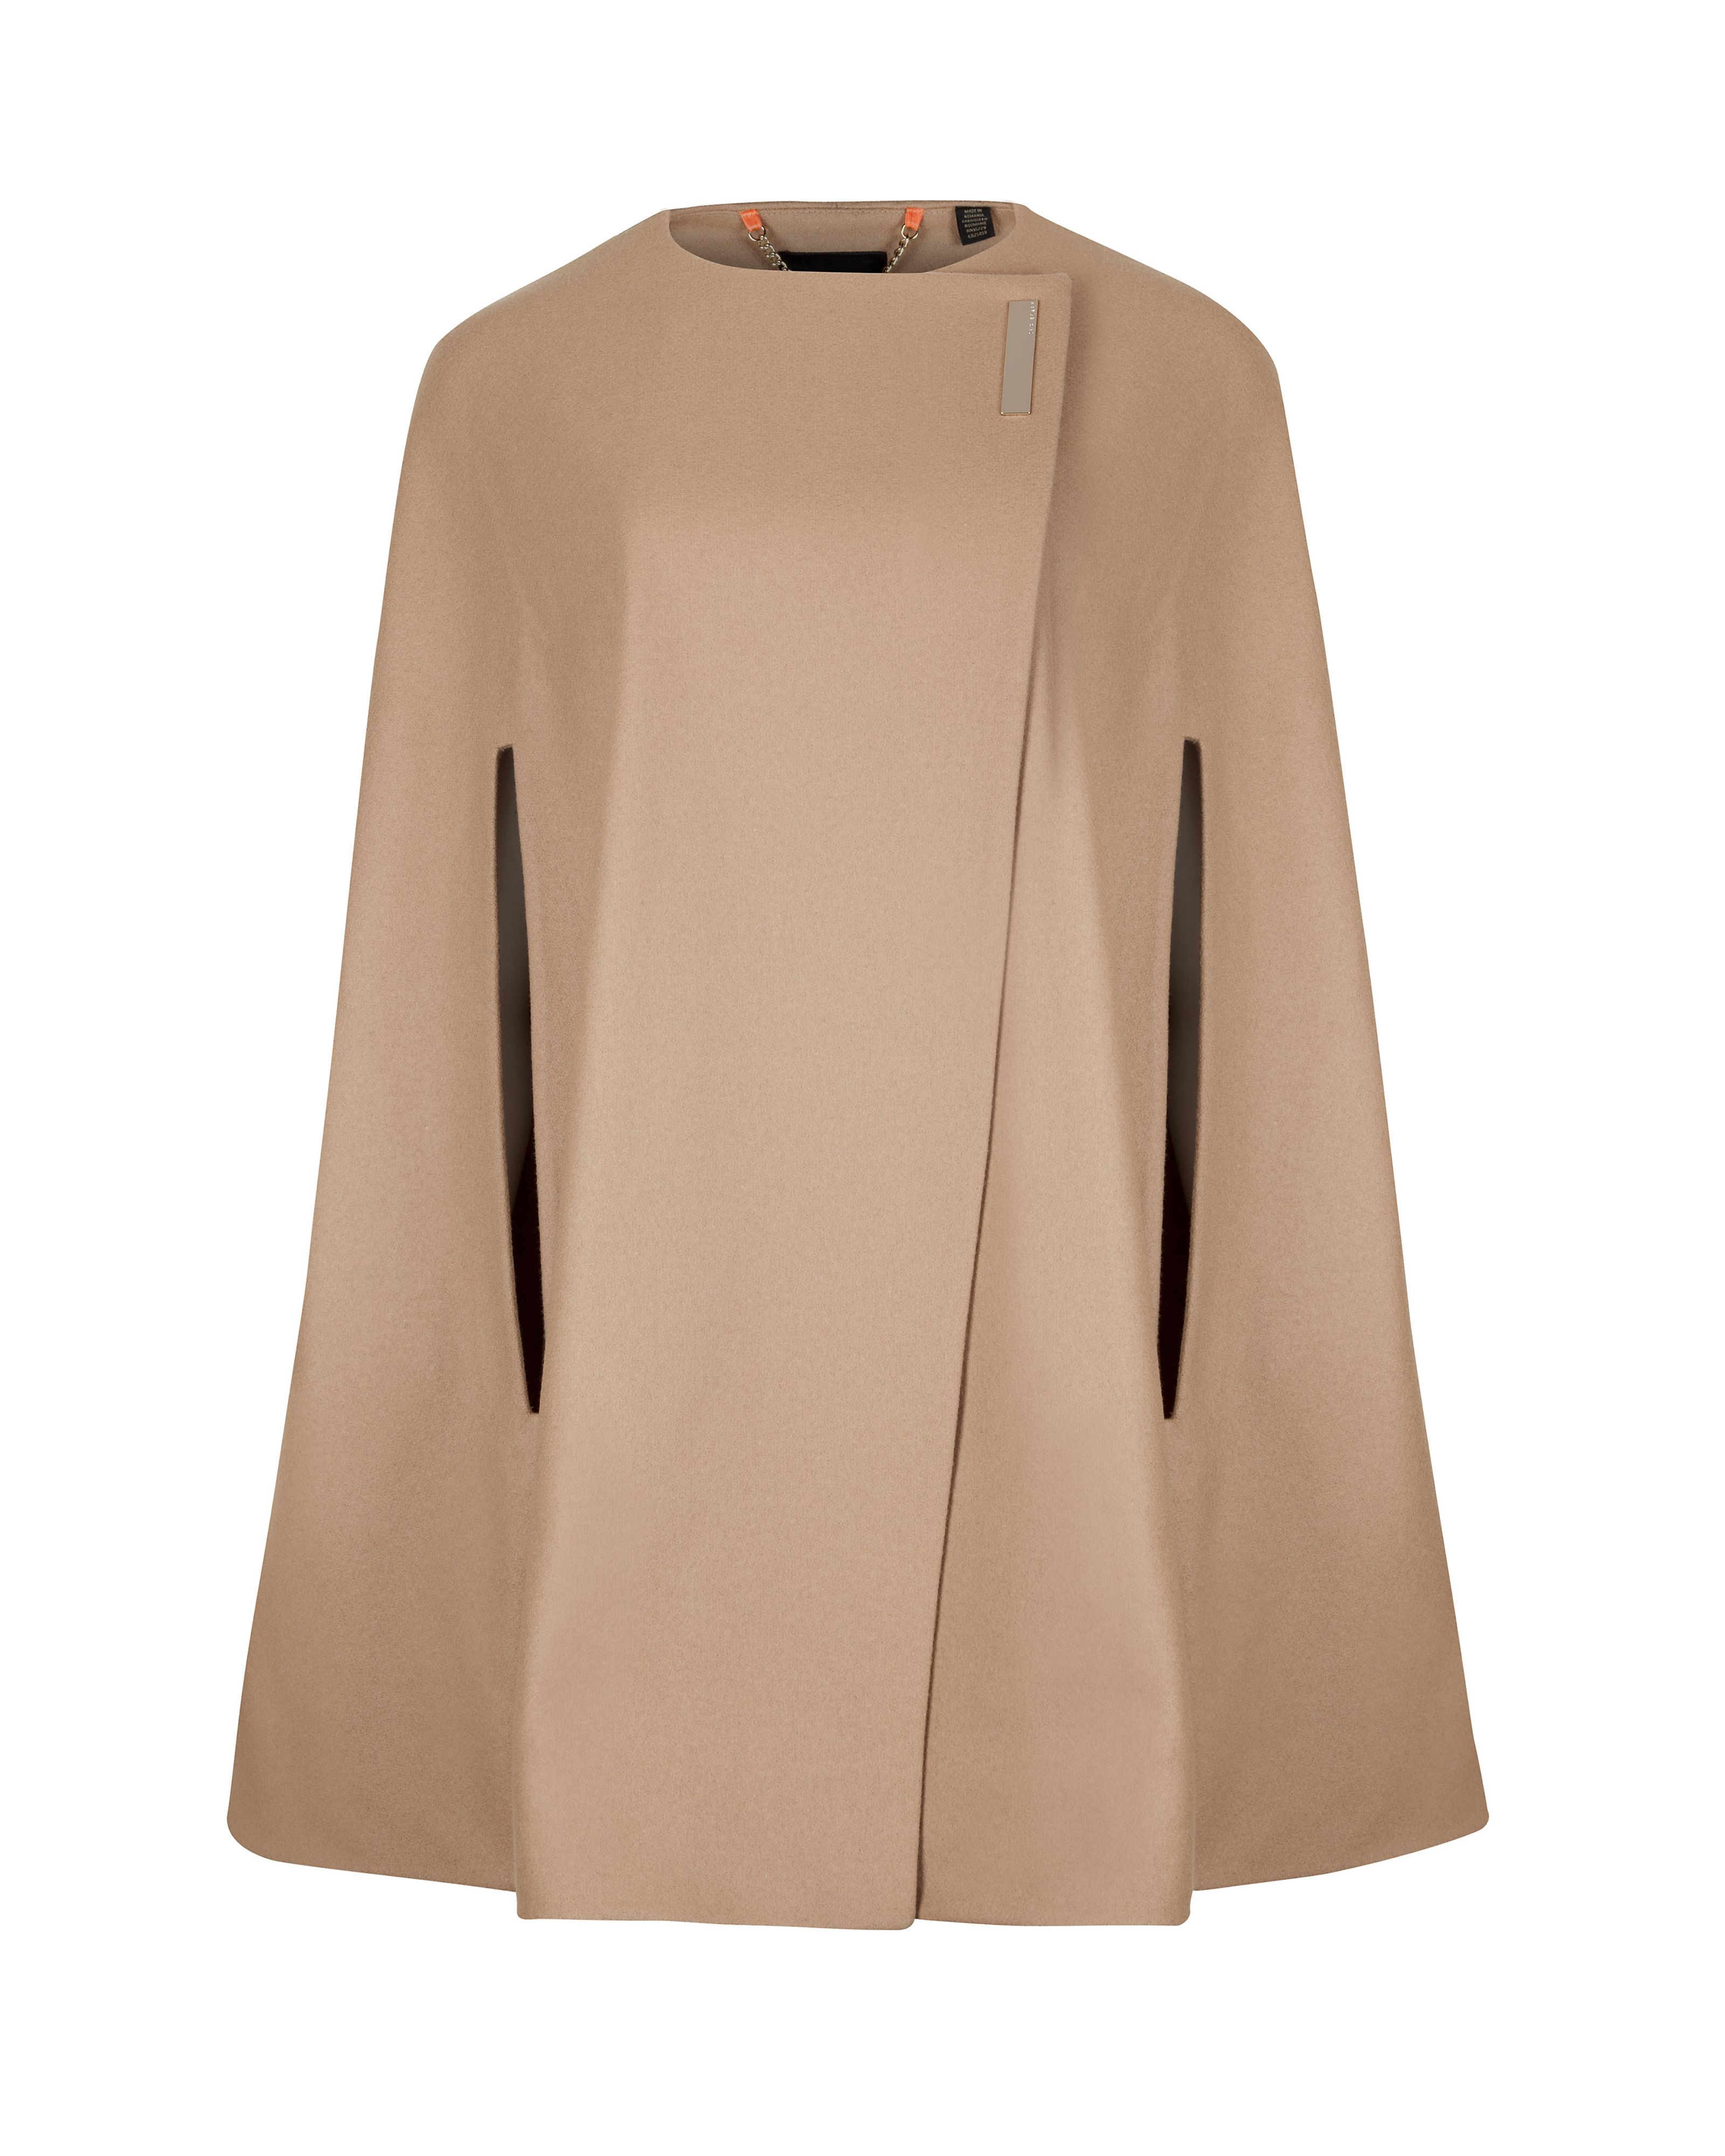 Ted baker Vickiye Wool Cape in Brown (Taupe)